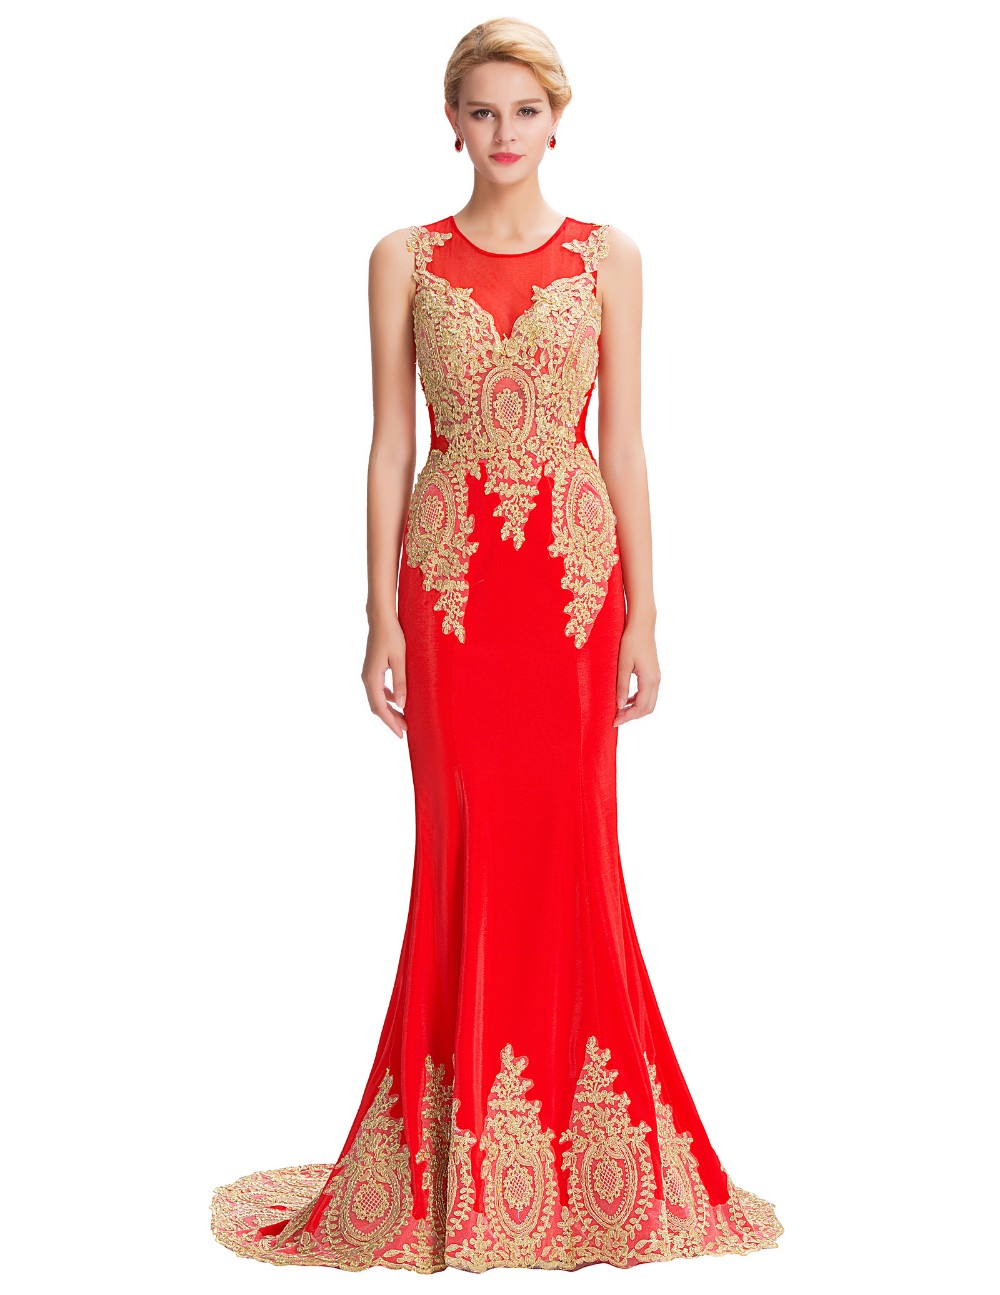 6b3aa6e51d111 Long Mermaid Evening Dress Grace Karin White Black Blue Red Gold Appliques  Floor Length Women Formal Gowns Elegant Party Dresses-in Evening Dresses ...